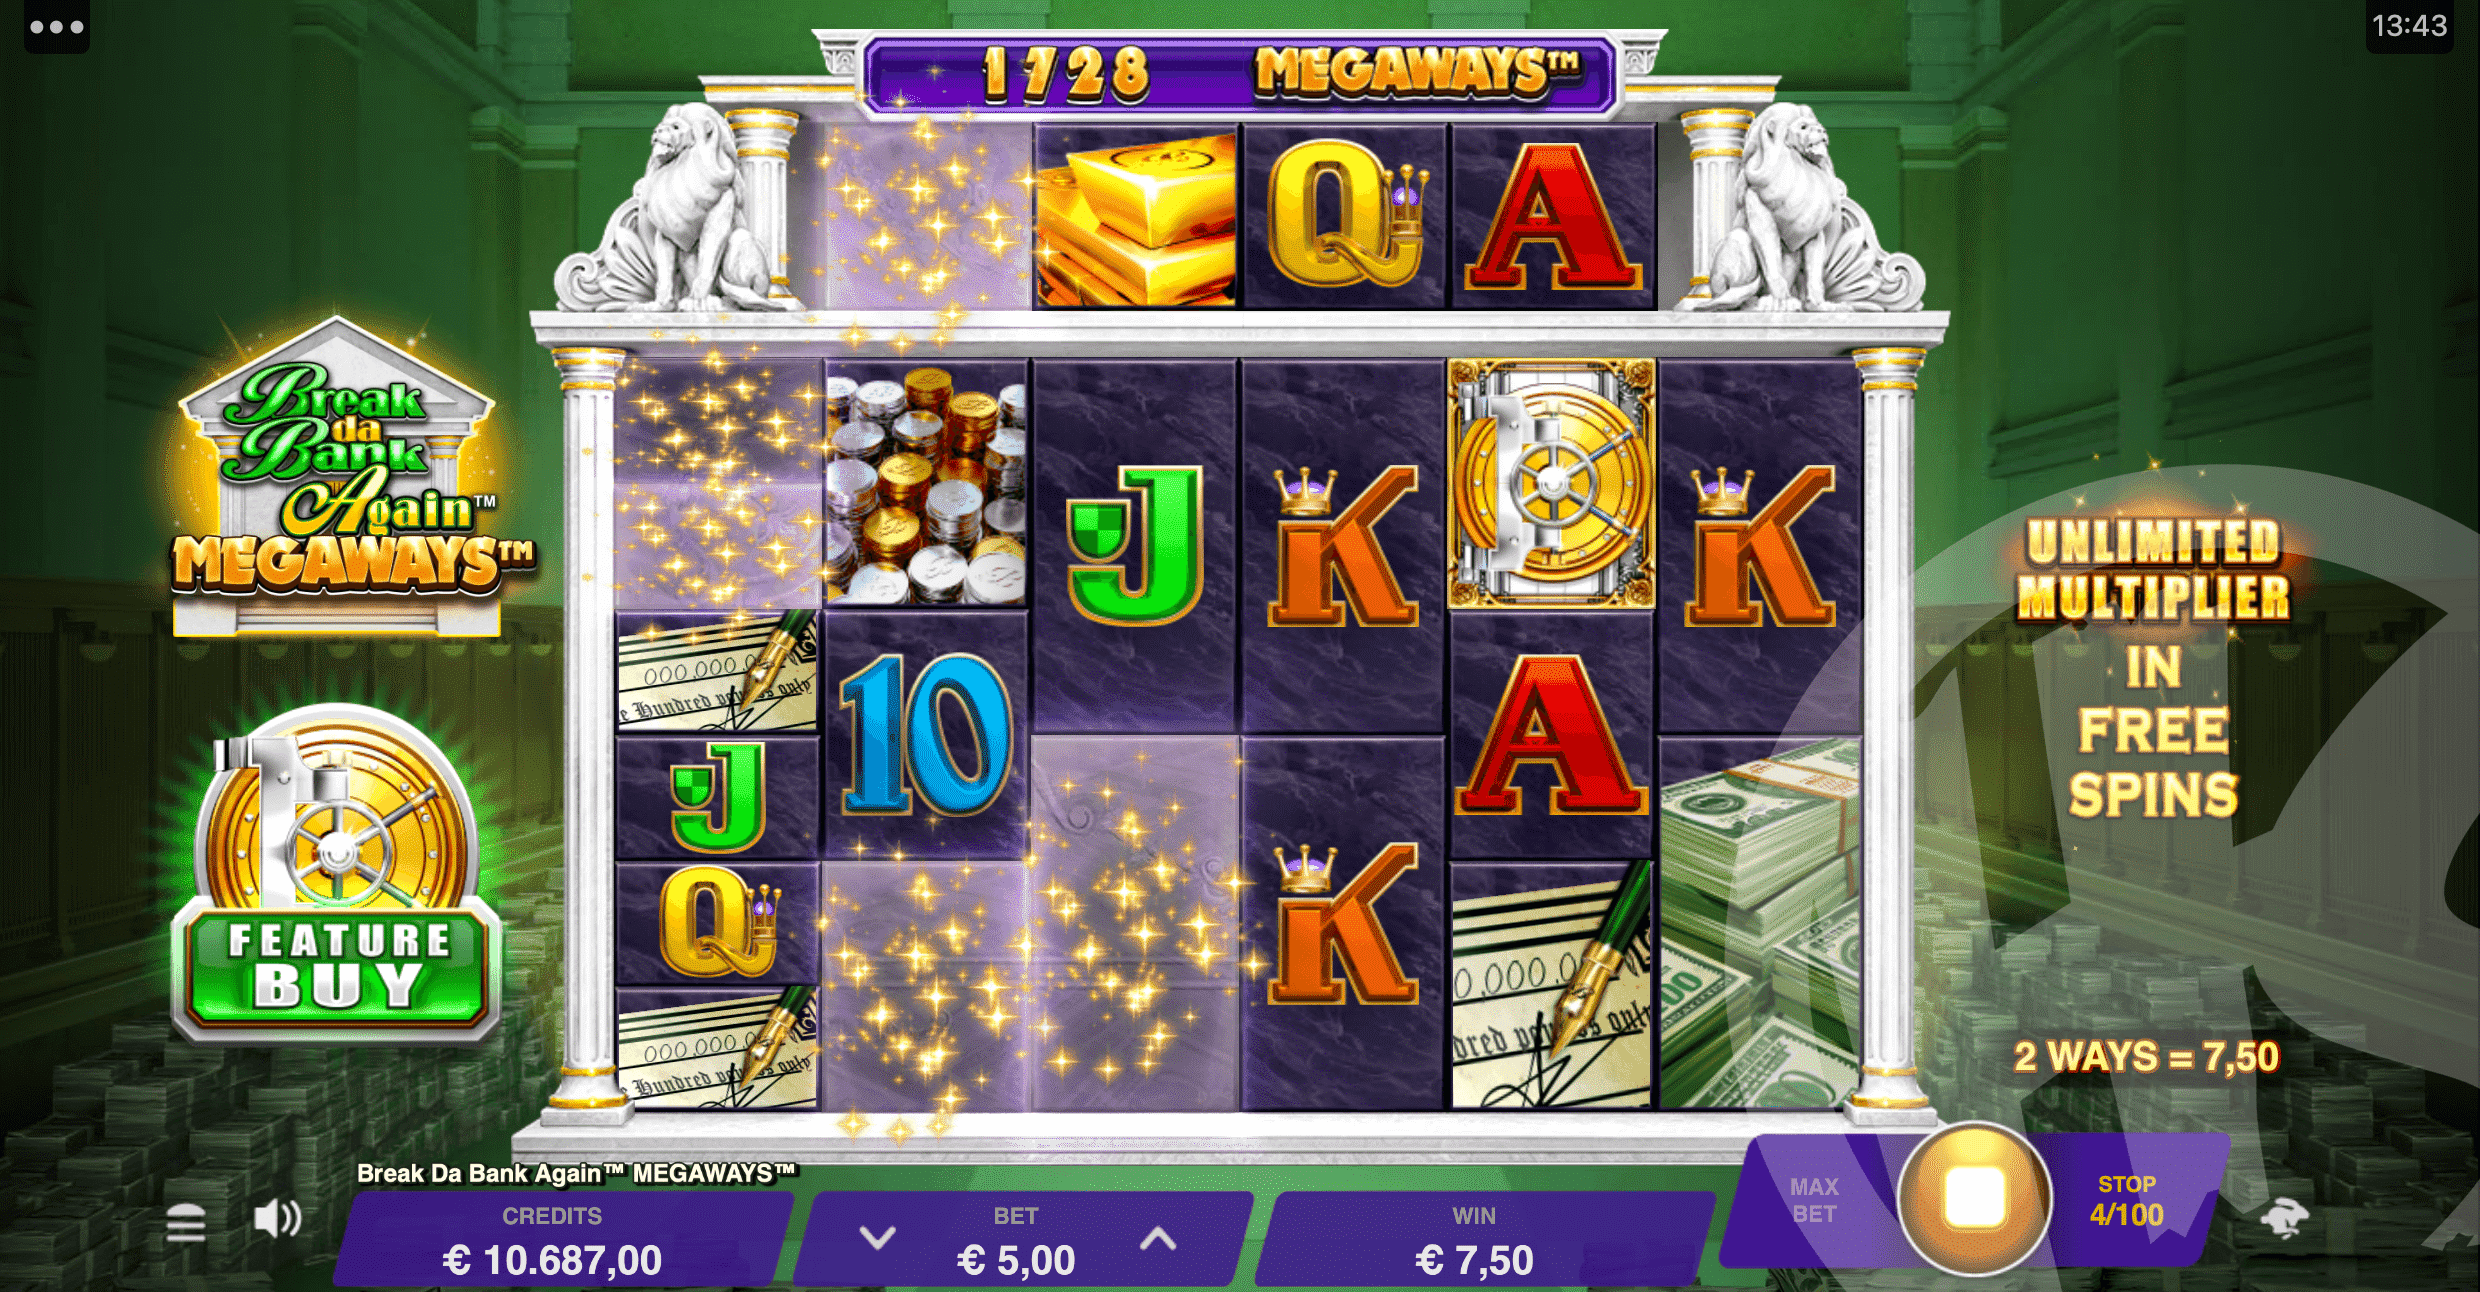 Rolling Reels are Active in The Base Game and Free Spins